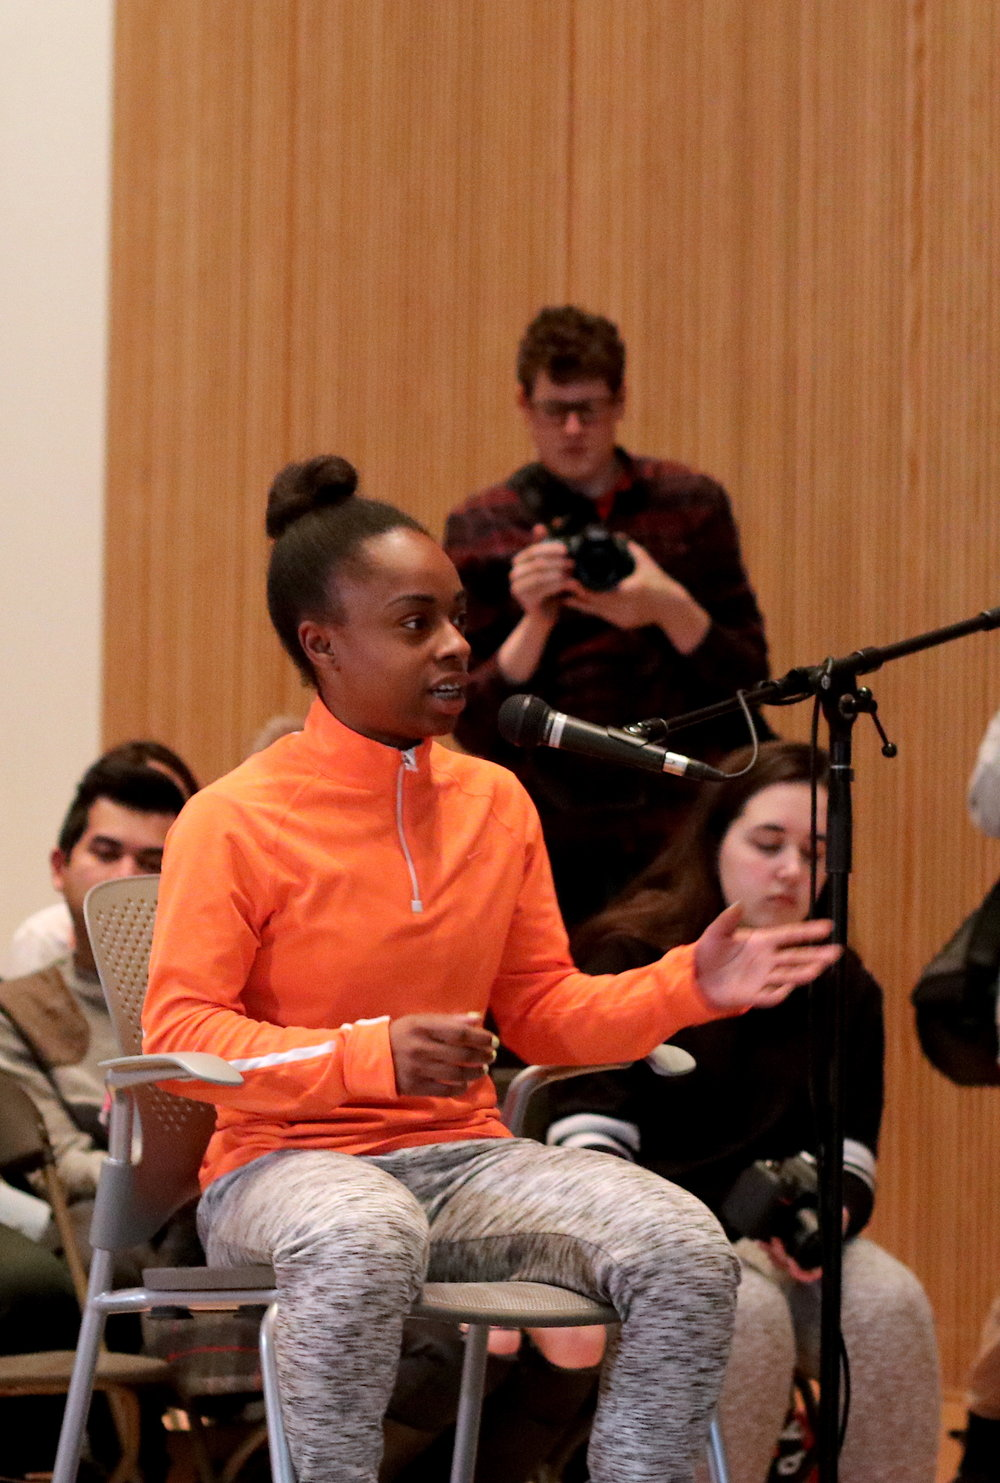 A student asks one of the panels a question. Photo by Saniya More.